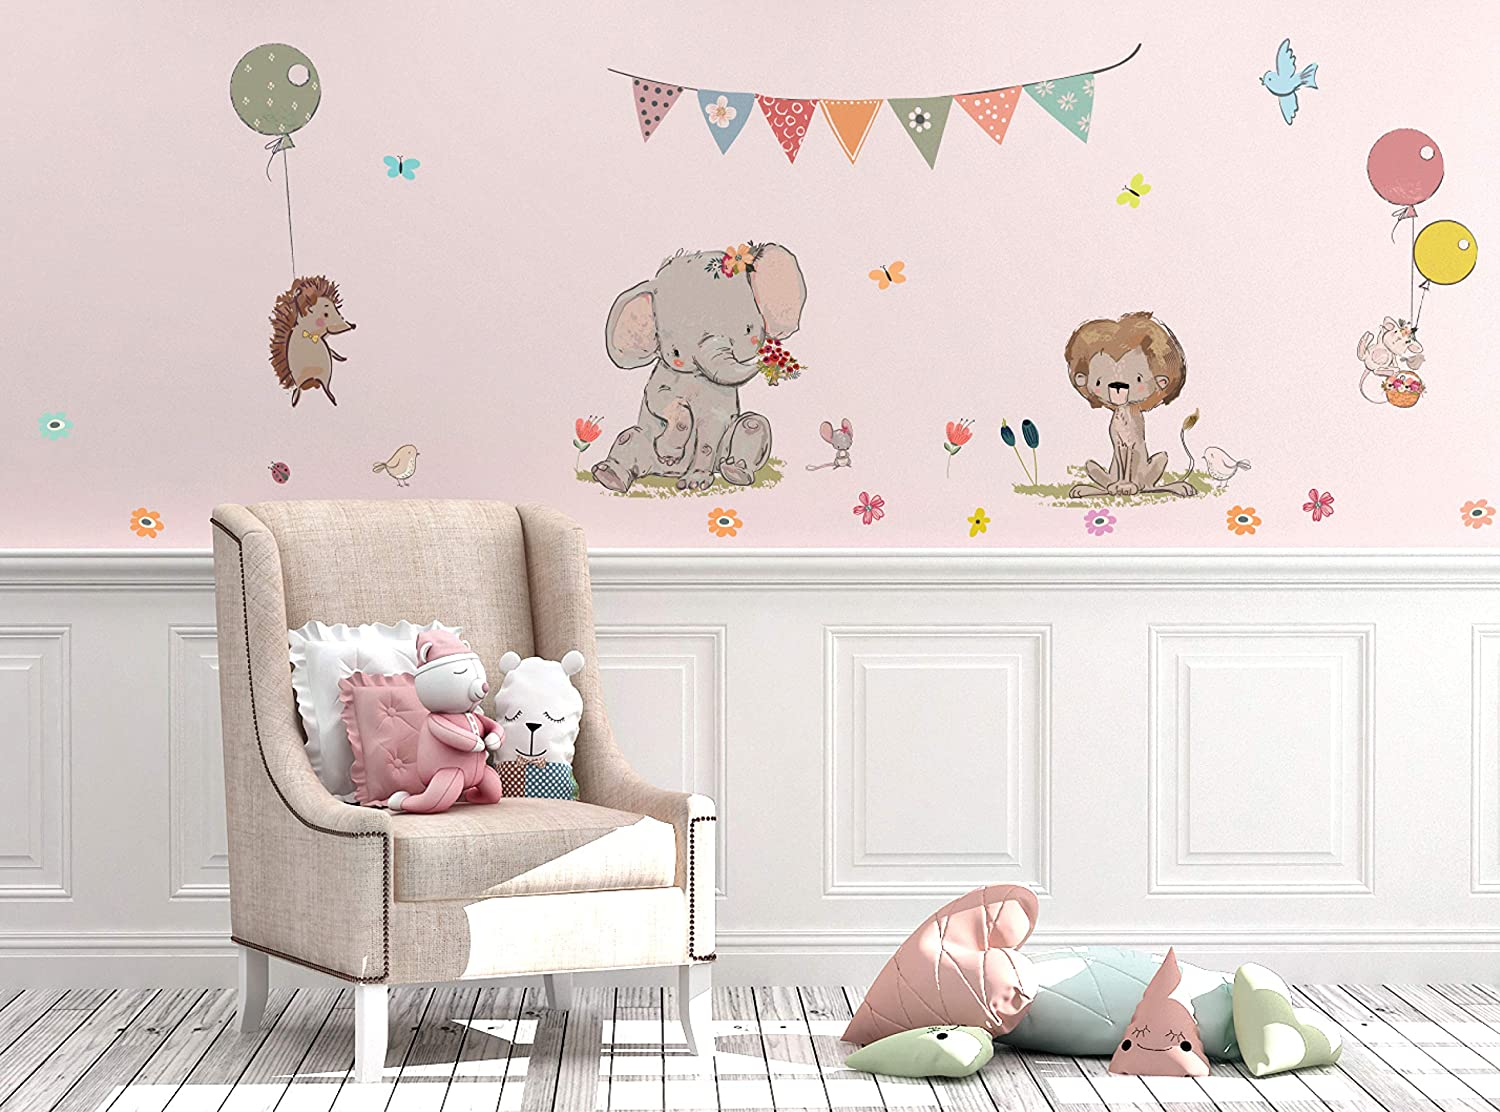 amazon com kids wall decals stickers nursery decor baby room decoramazon com kids wall decals stickers nursery decor baby room decor nursery wall stickers safari woodland scene for baby toddler boys \u0026 girls rooms peel and